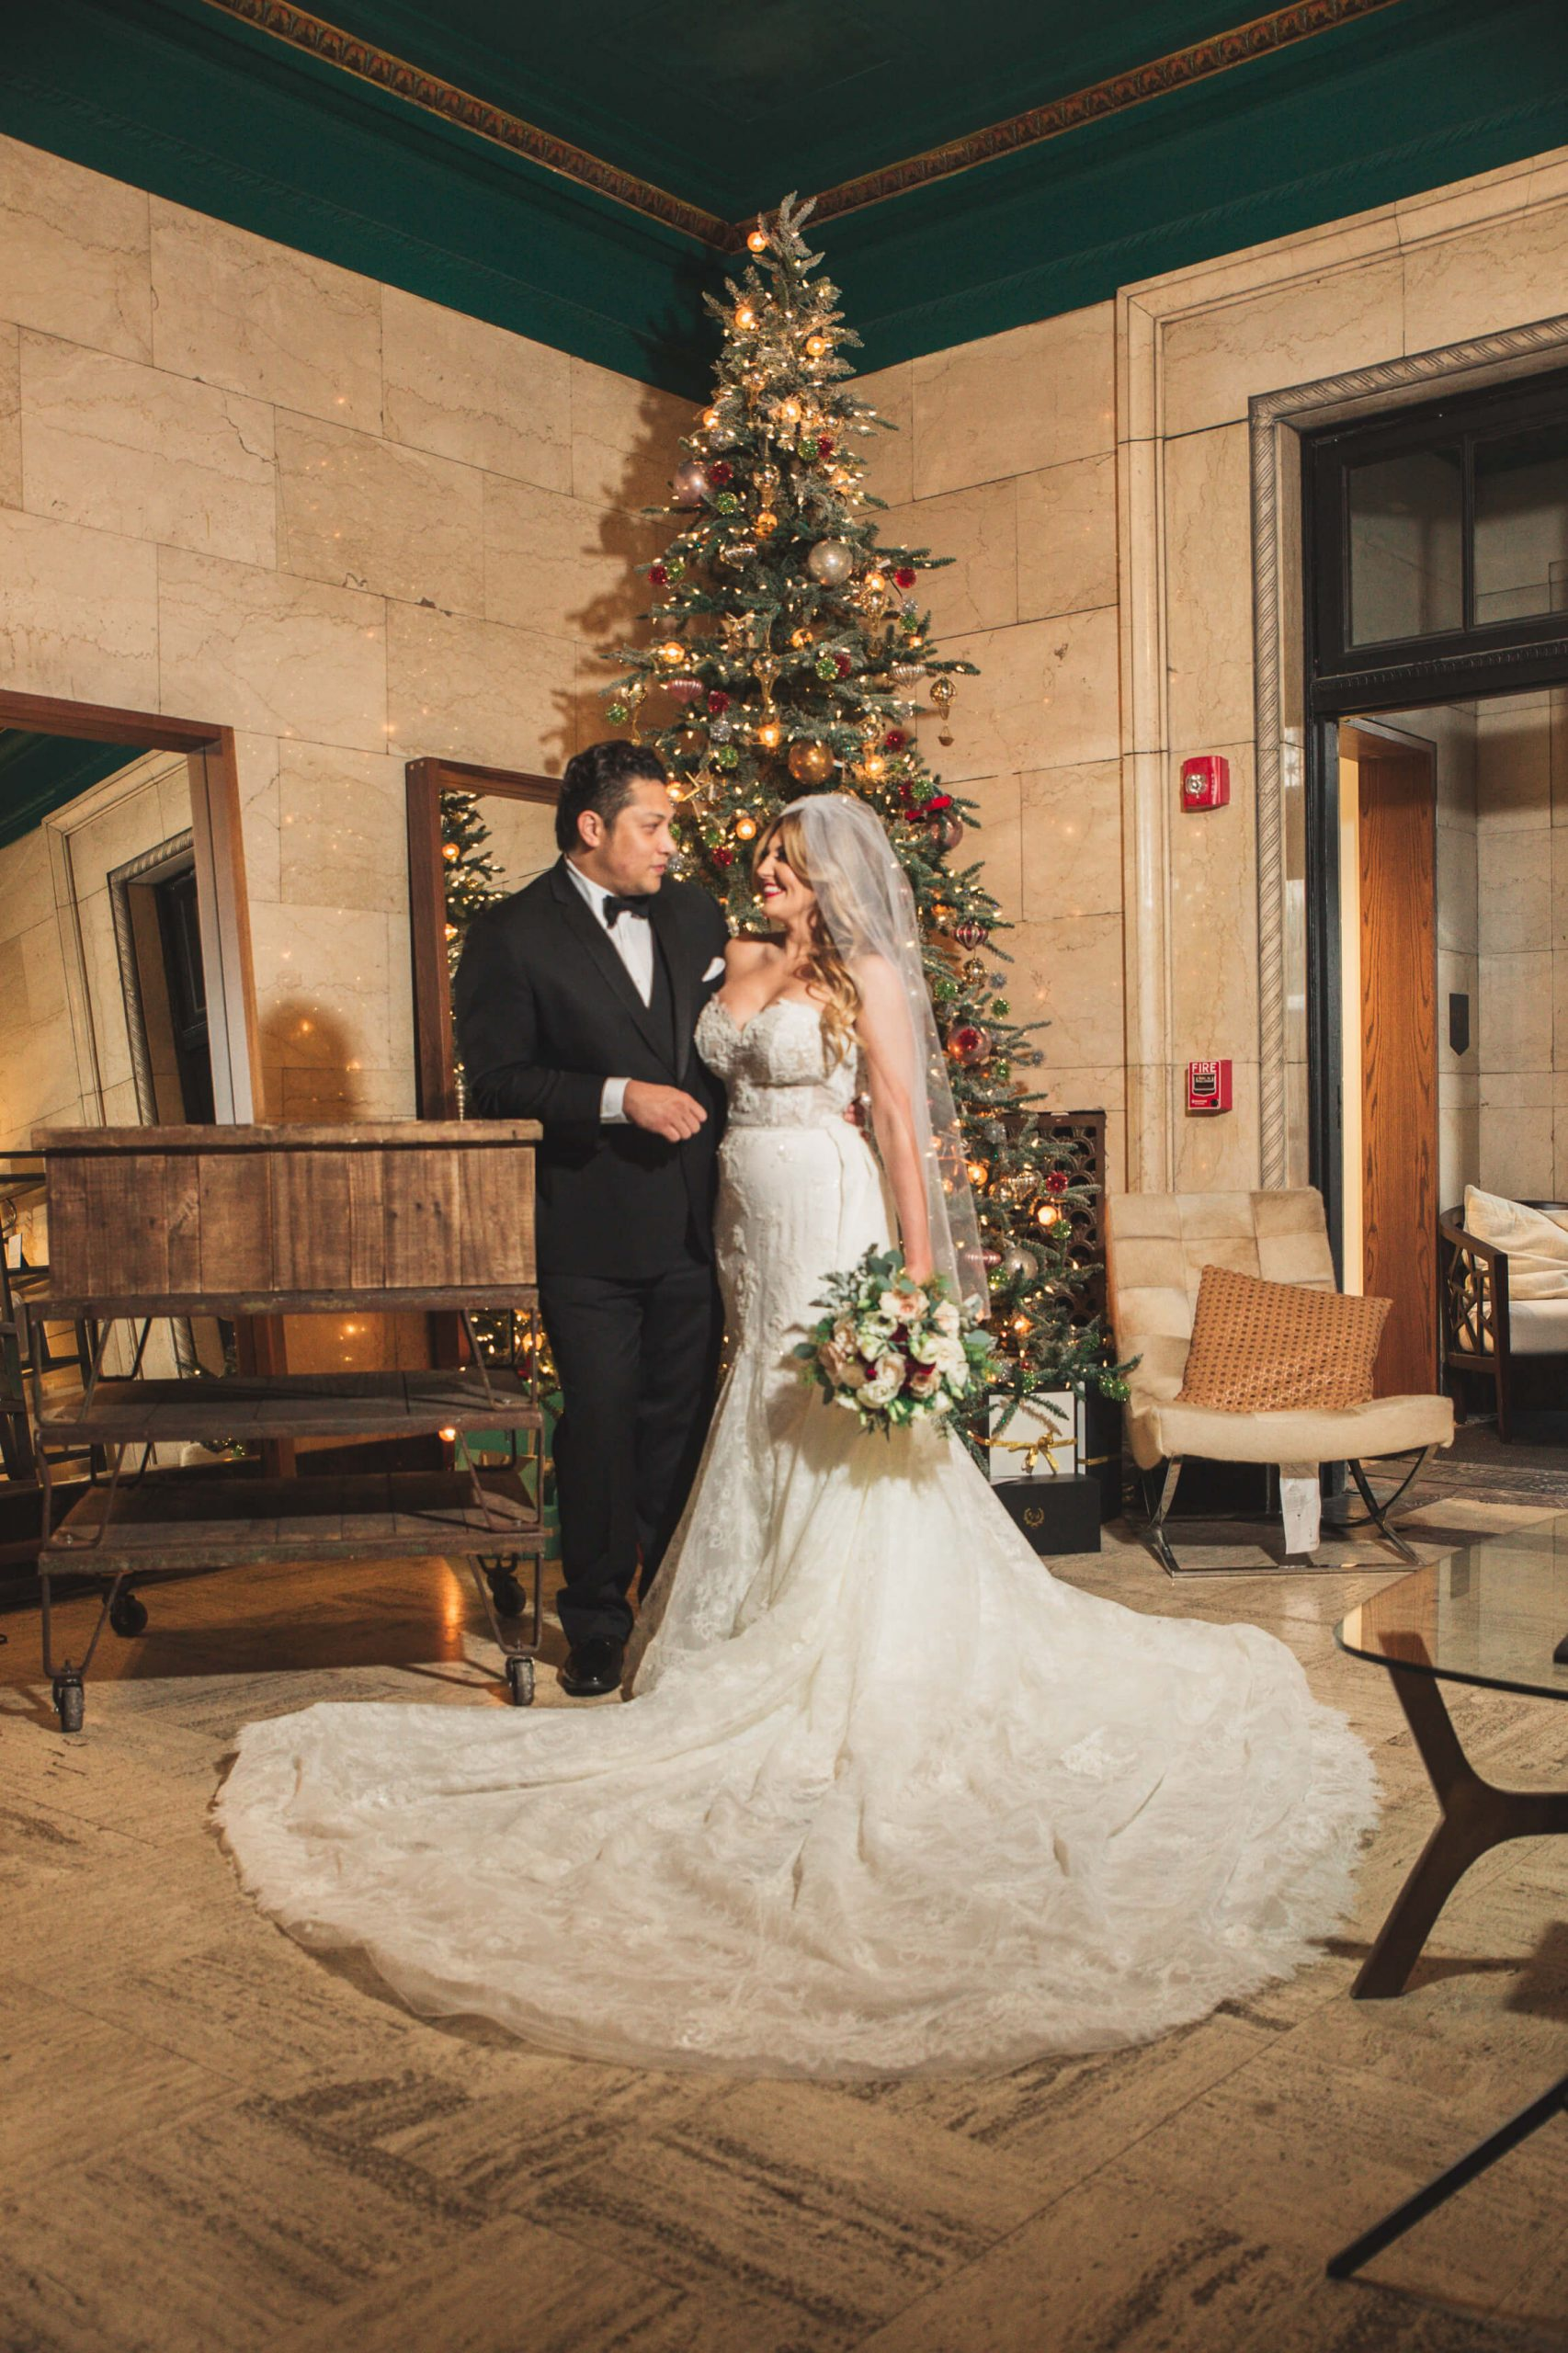 bride and groom romantic in front of Christmas tree